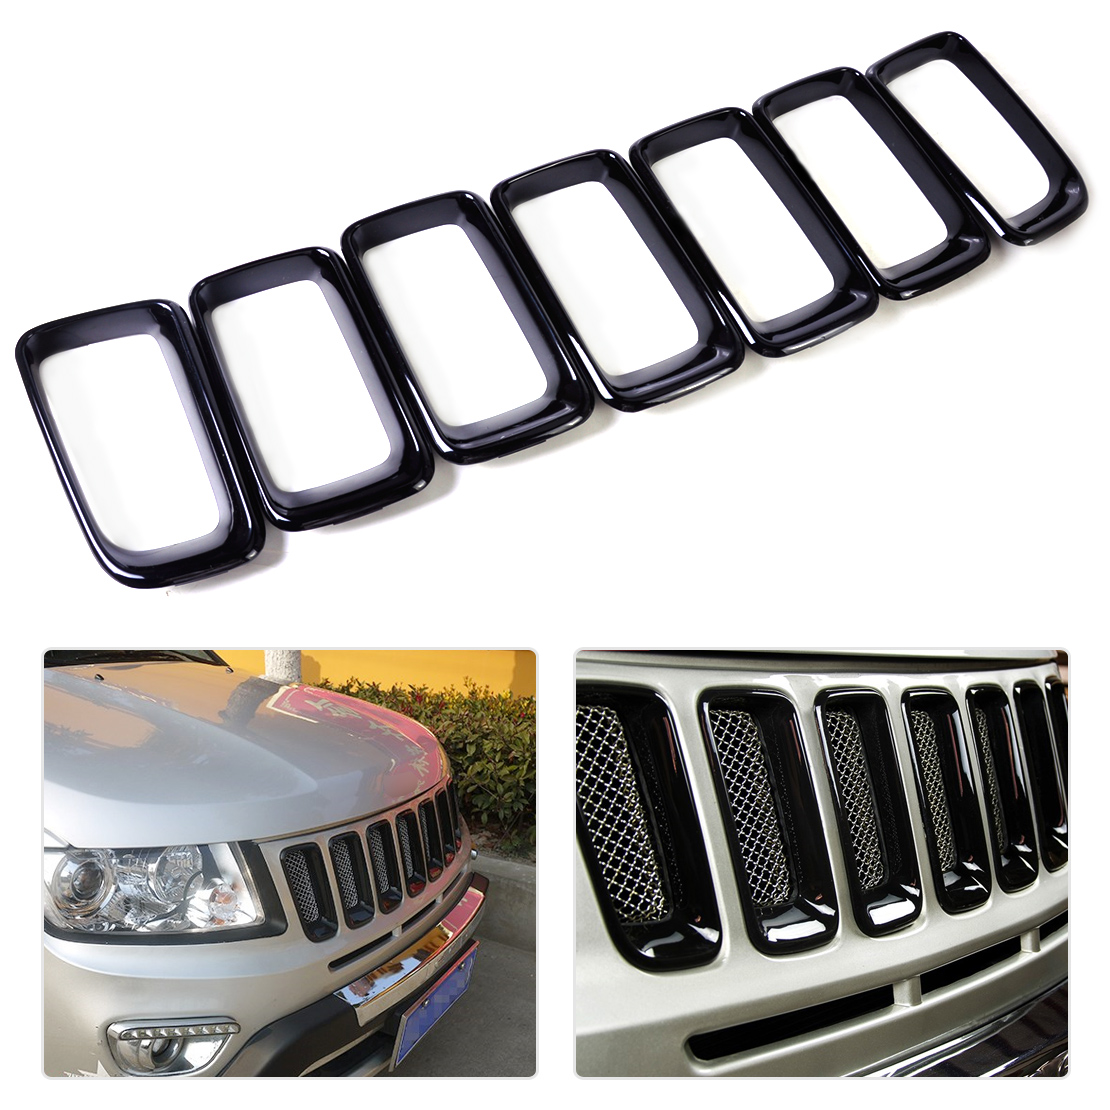 DWCX 7pcs/Lot Black Front Center Grille Vent Outlet Hole Cover Trim Net Frame Fit for Jeep Compass 2011 2012 2013 2014 2015 2016 магнит angelucky умный совёнок пластик авторская работа 5 х 7 5 см